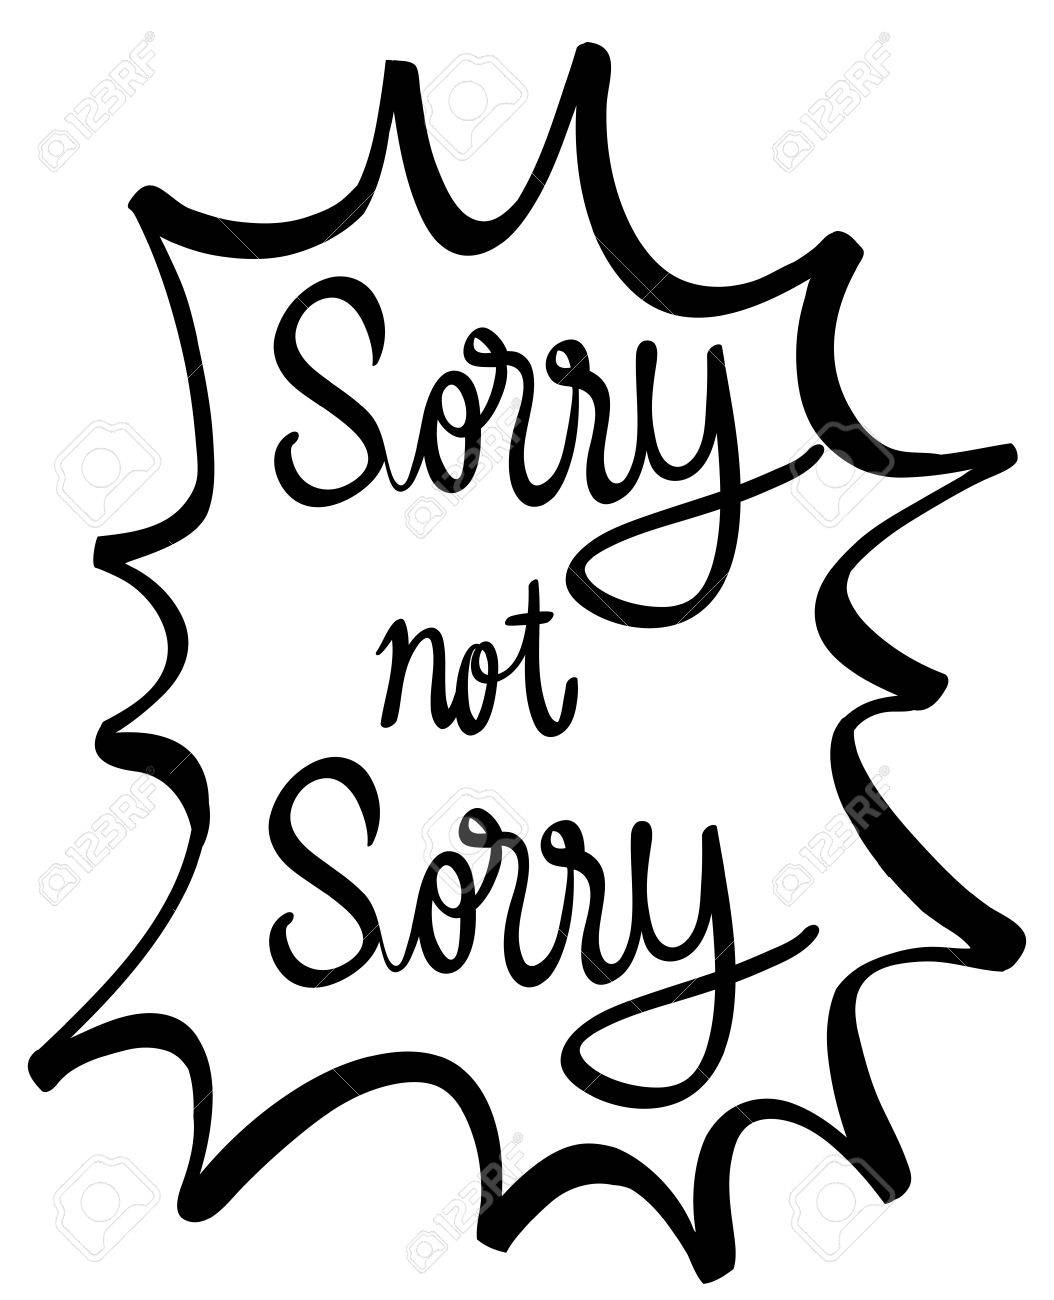 word expression for sorry and not sorry illustration royalty free rh 123rf com sorry clipart animated clipart sorry for your loss